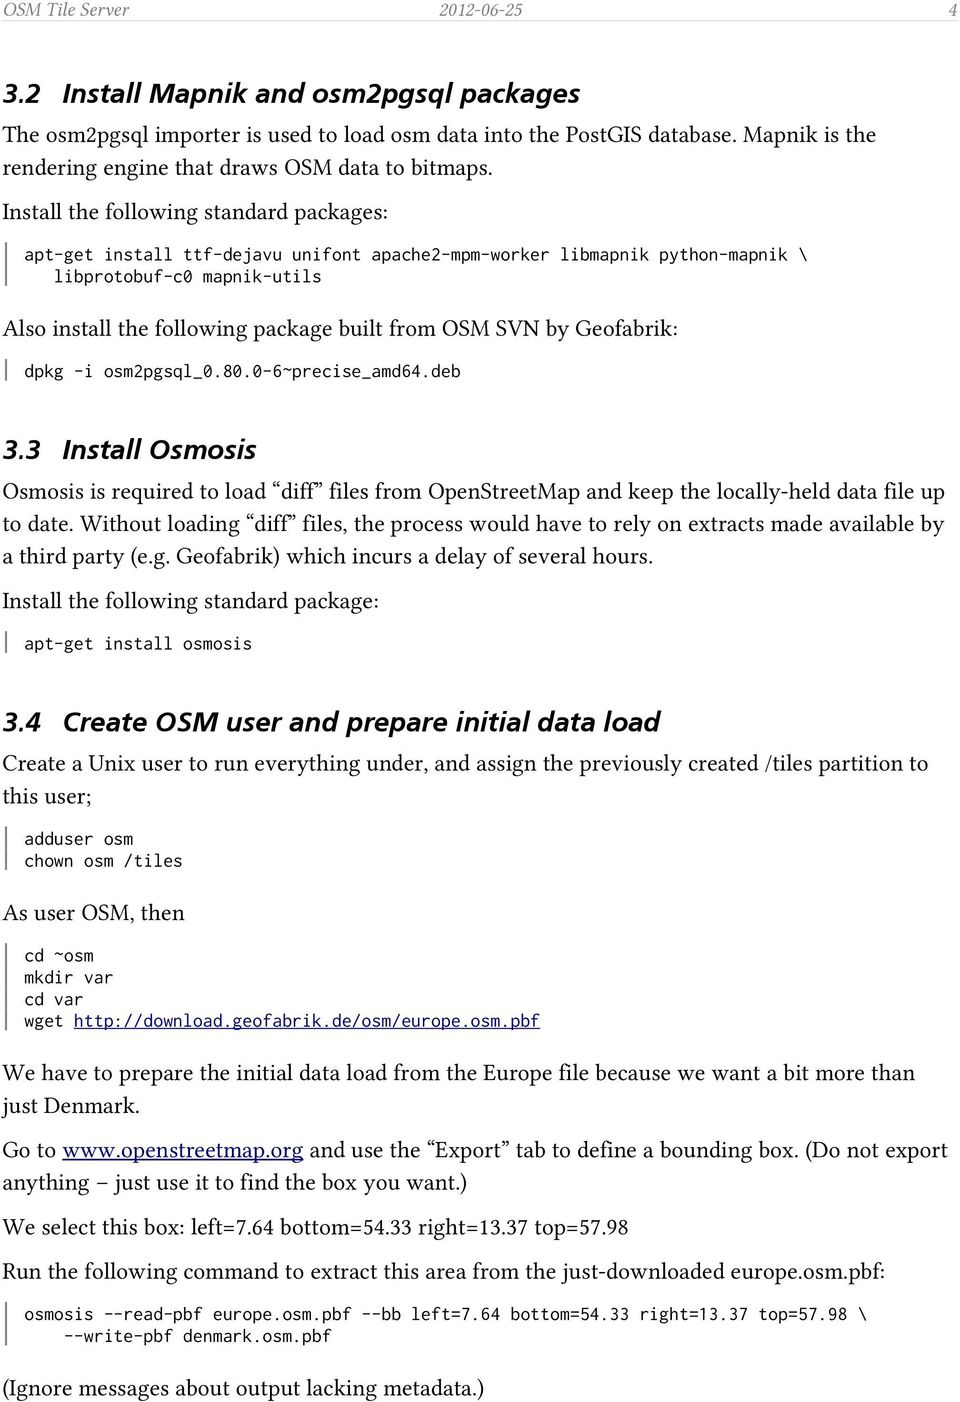 OSM Tile Server  1 Task Description & Background  Contents